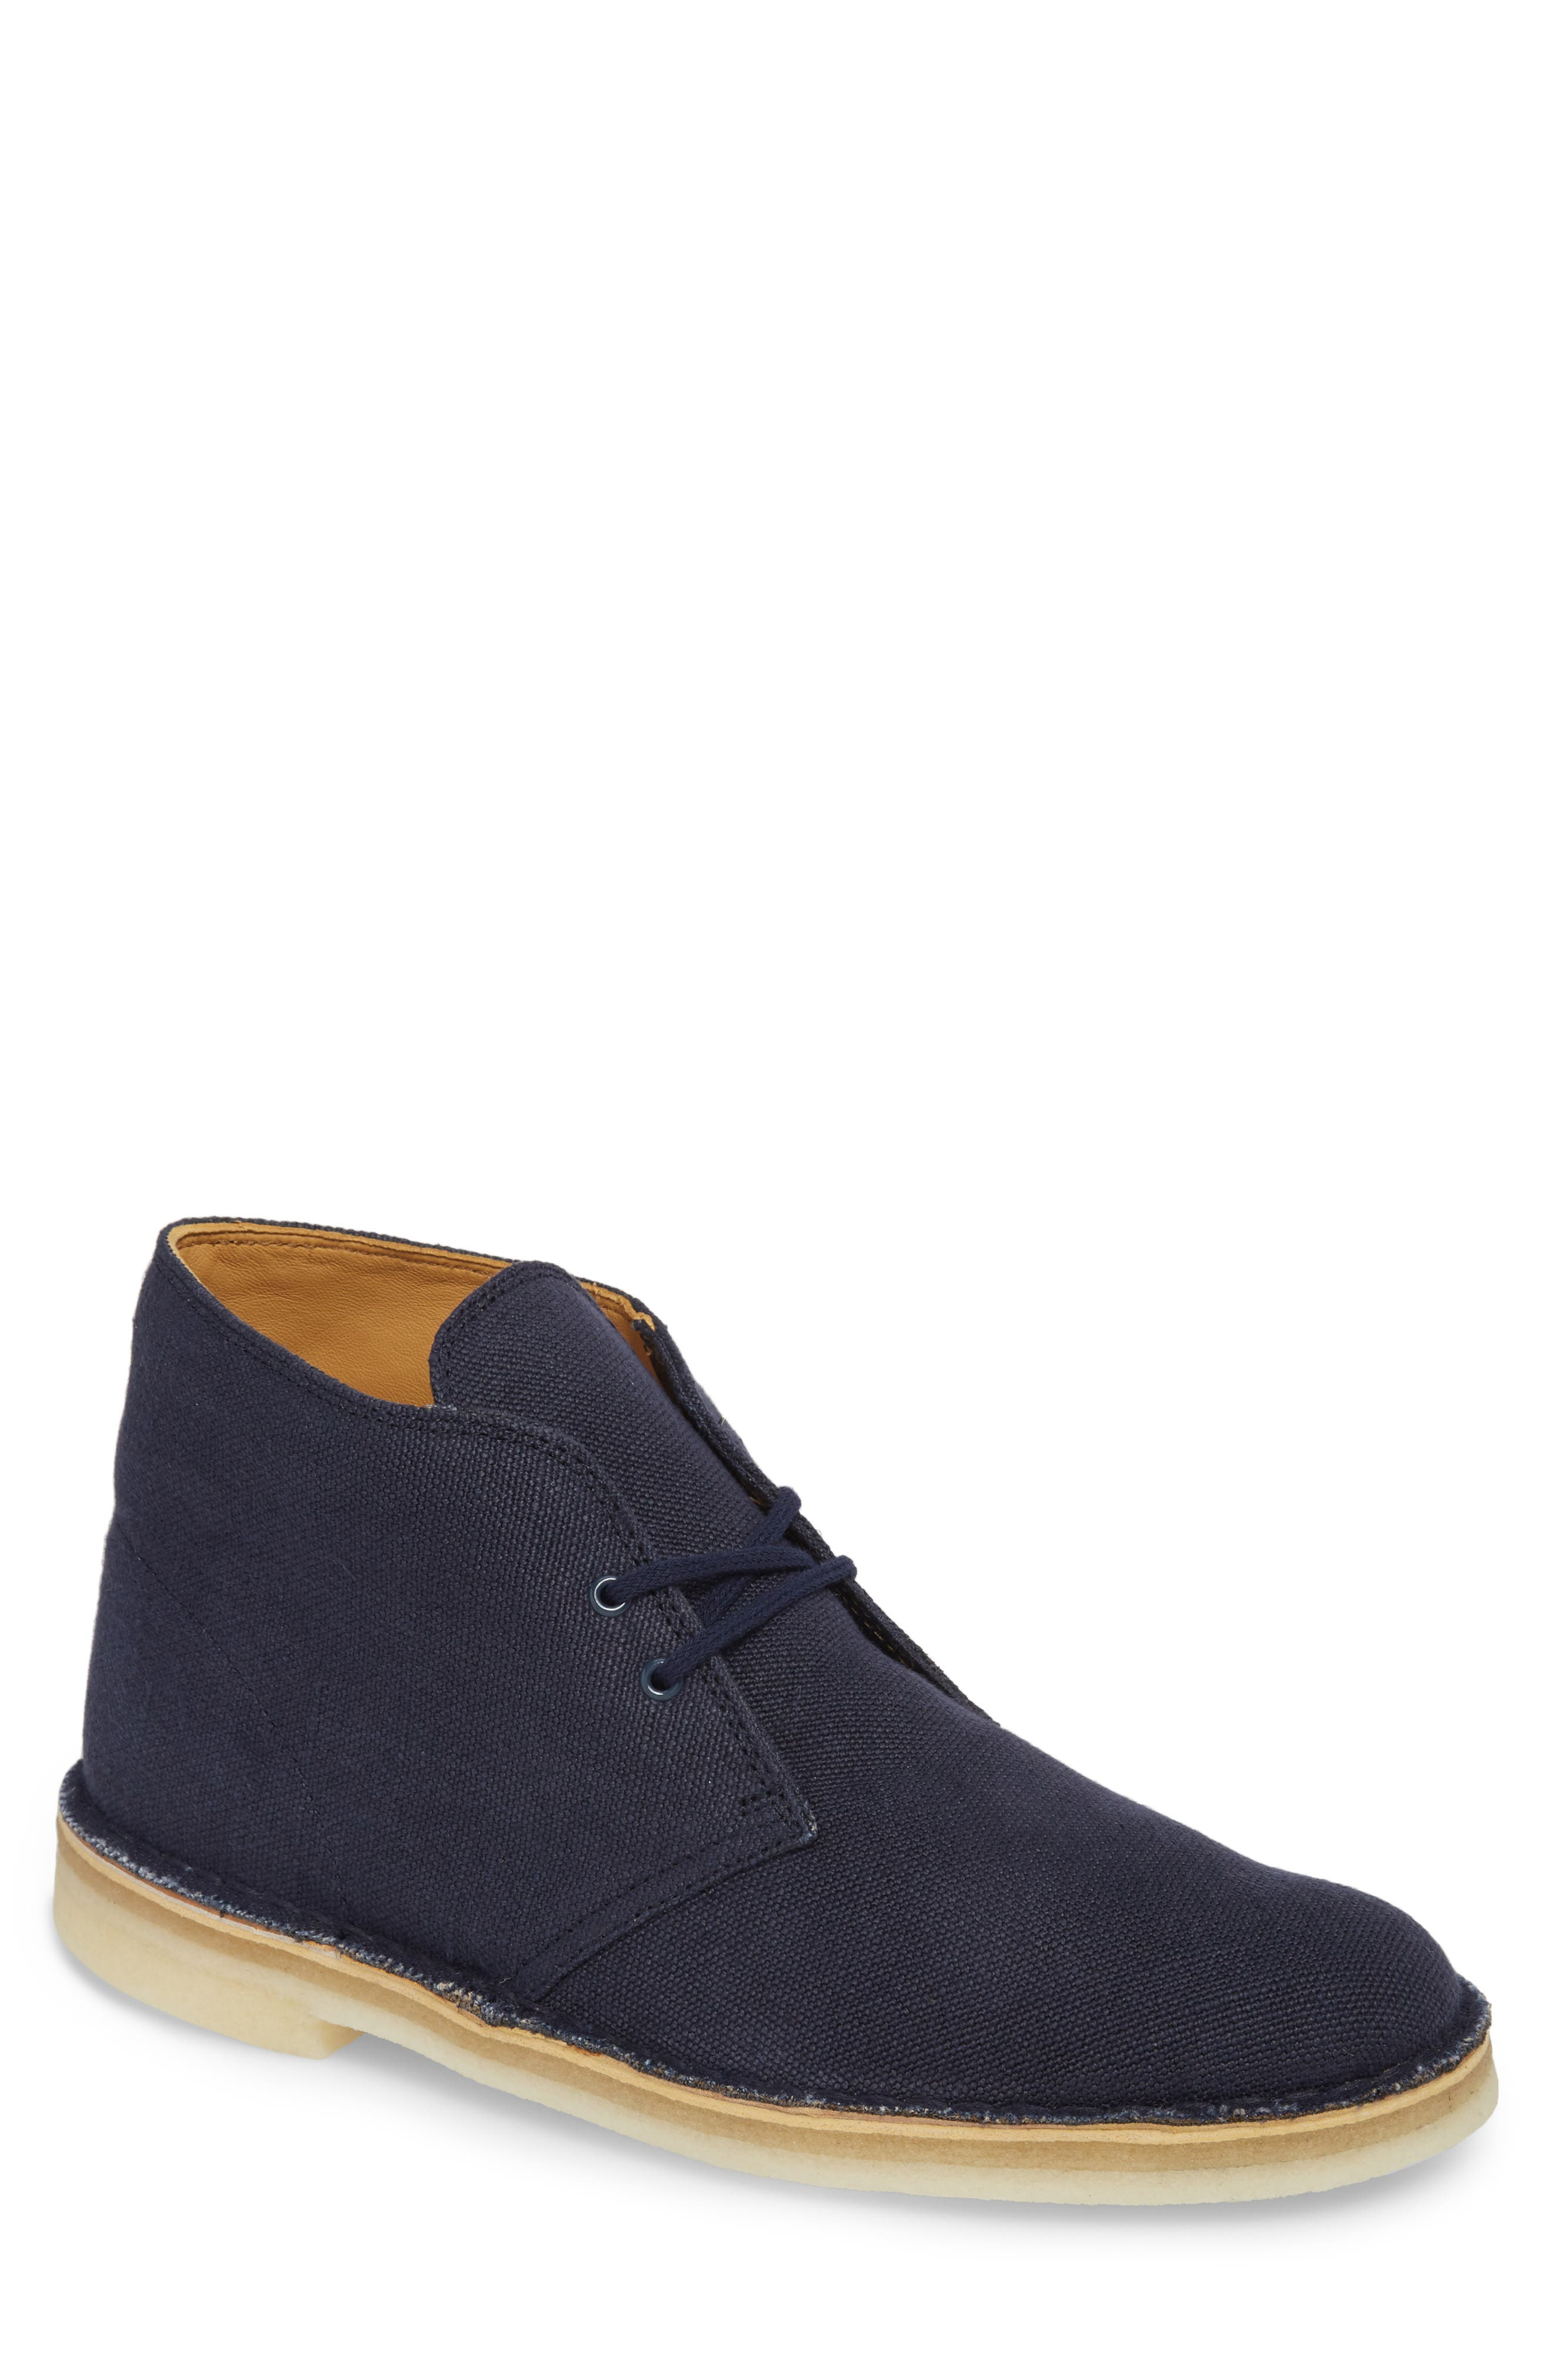 Clarks of England Desert Boot,                         Main,                         color, Navy Canvas